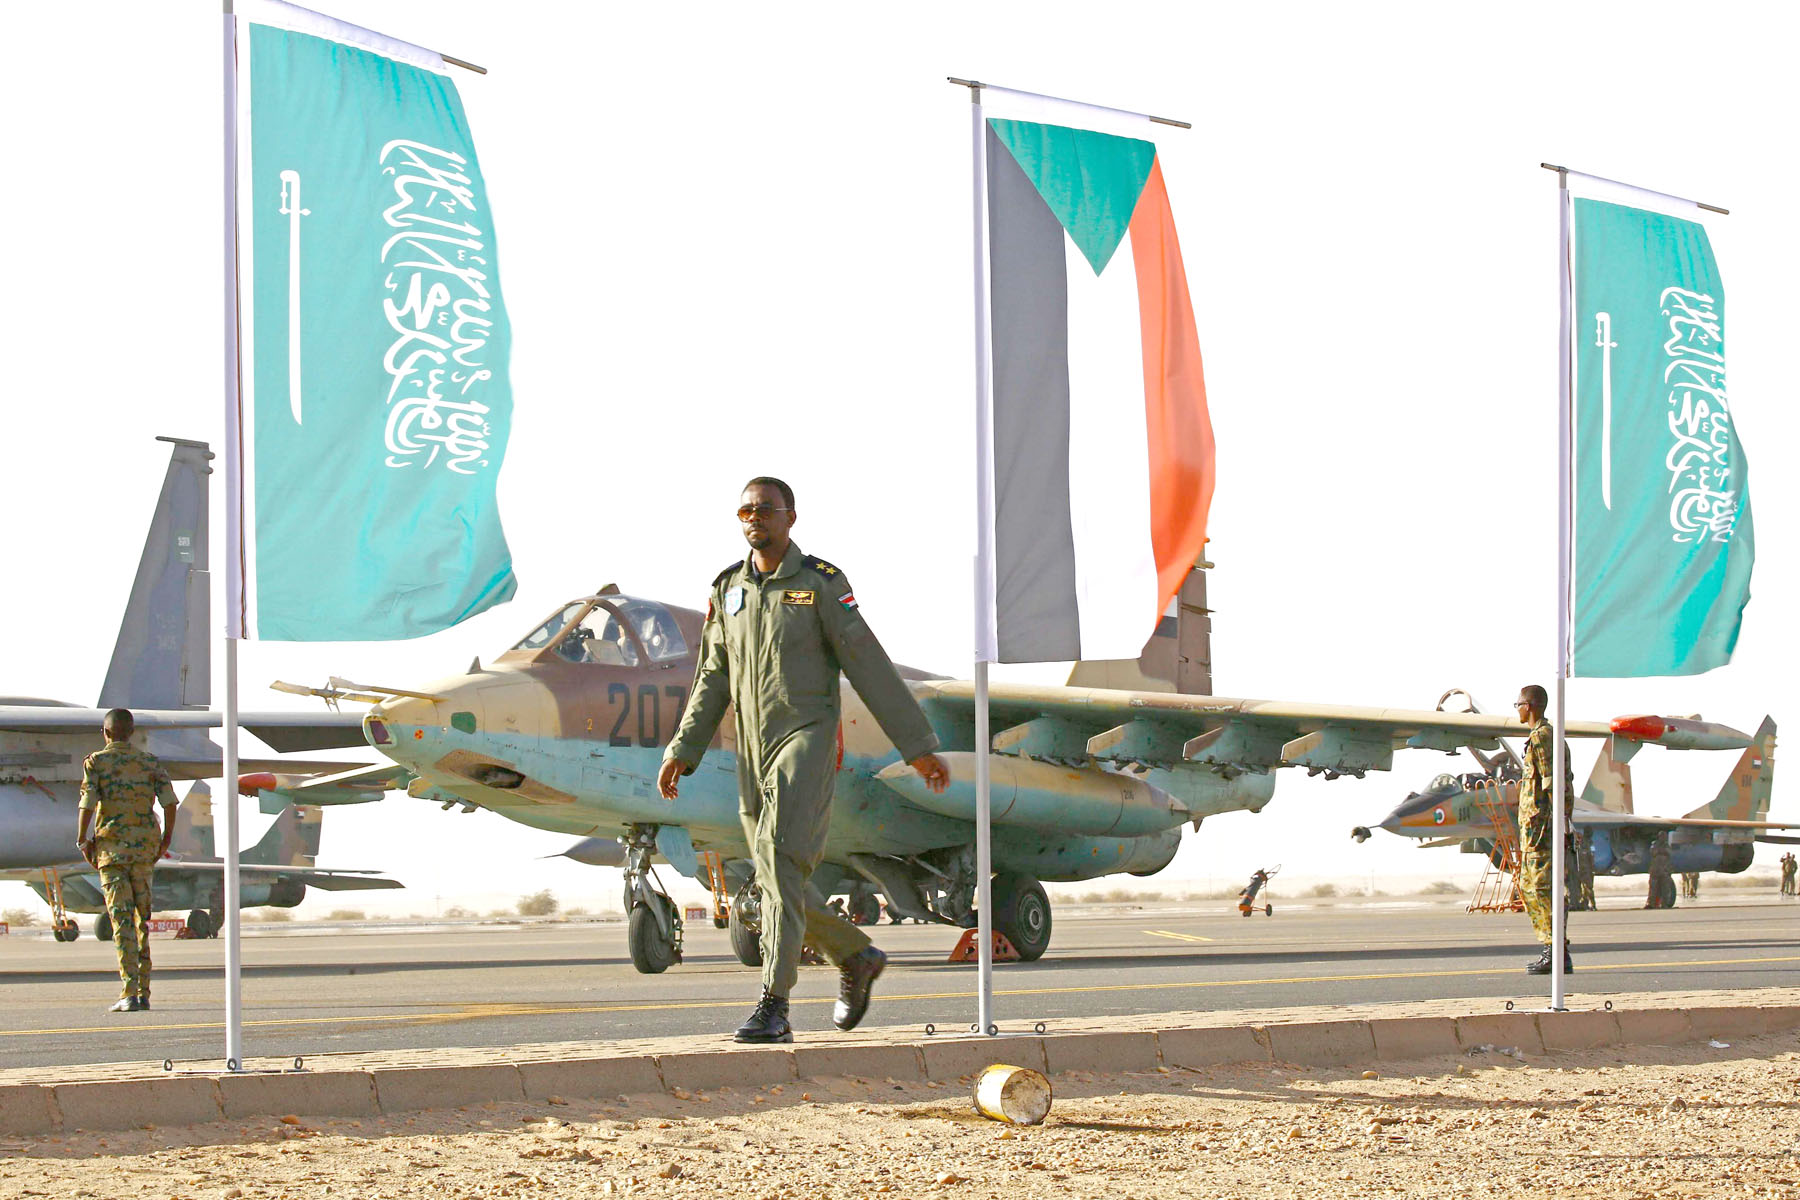 A member of Sudanese forces walks on the tarmac during a joint military drill with Saudi troops at the Marwa air base in Sudan. (AFP)